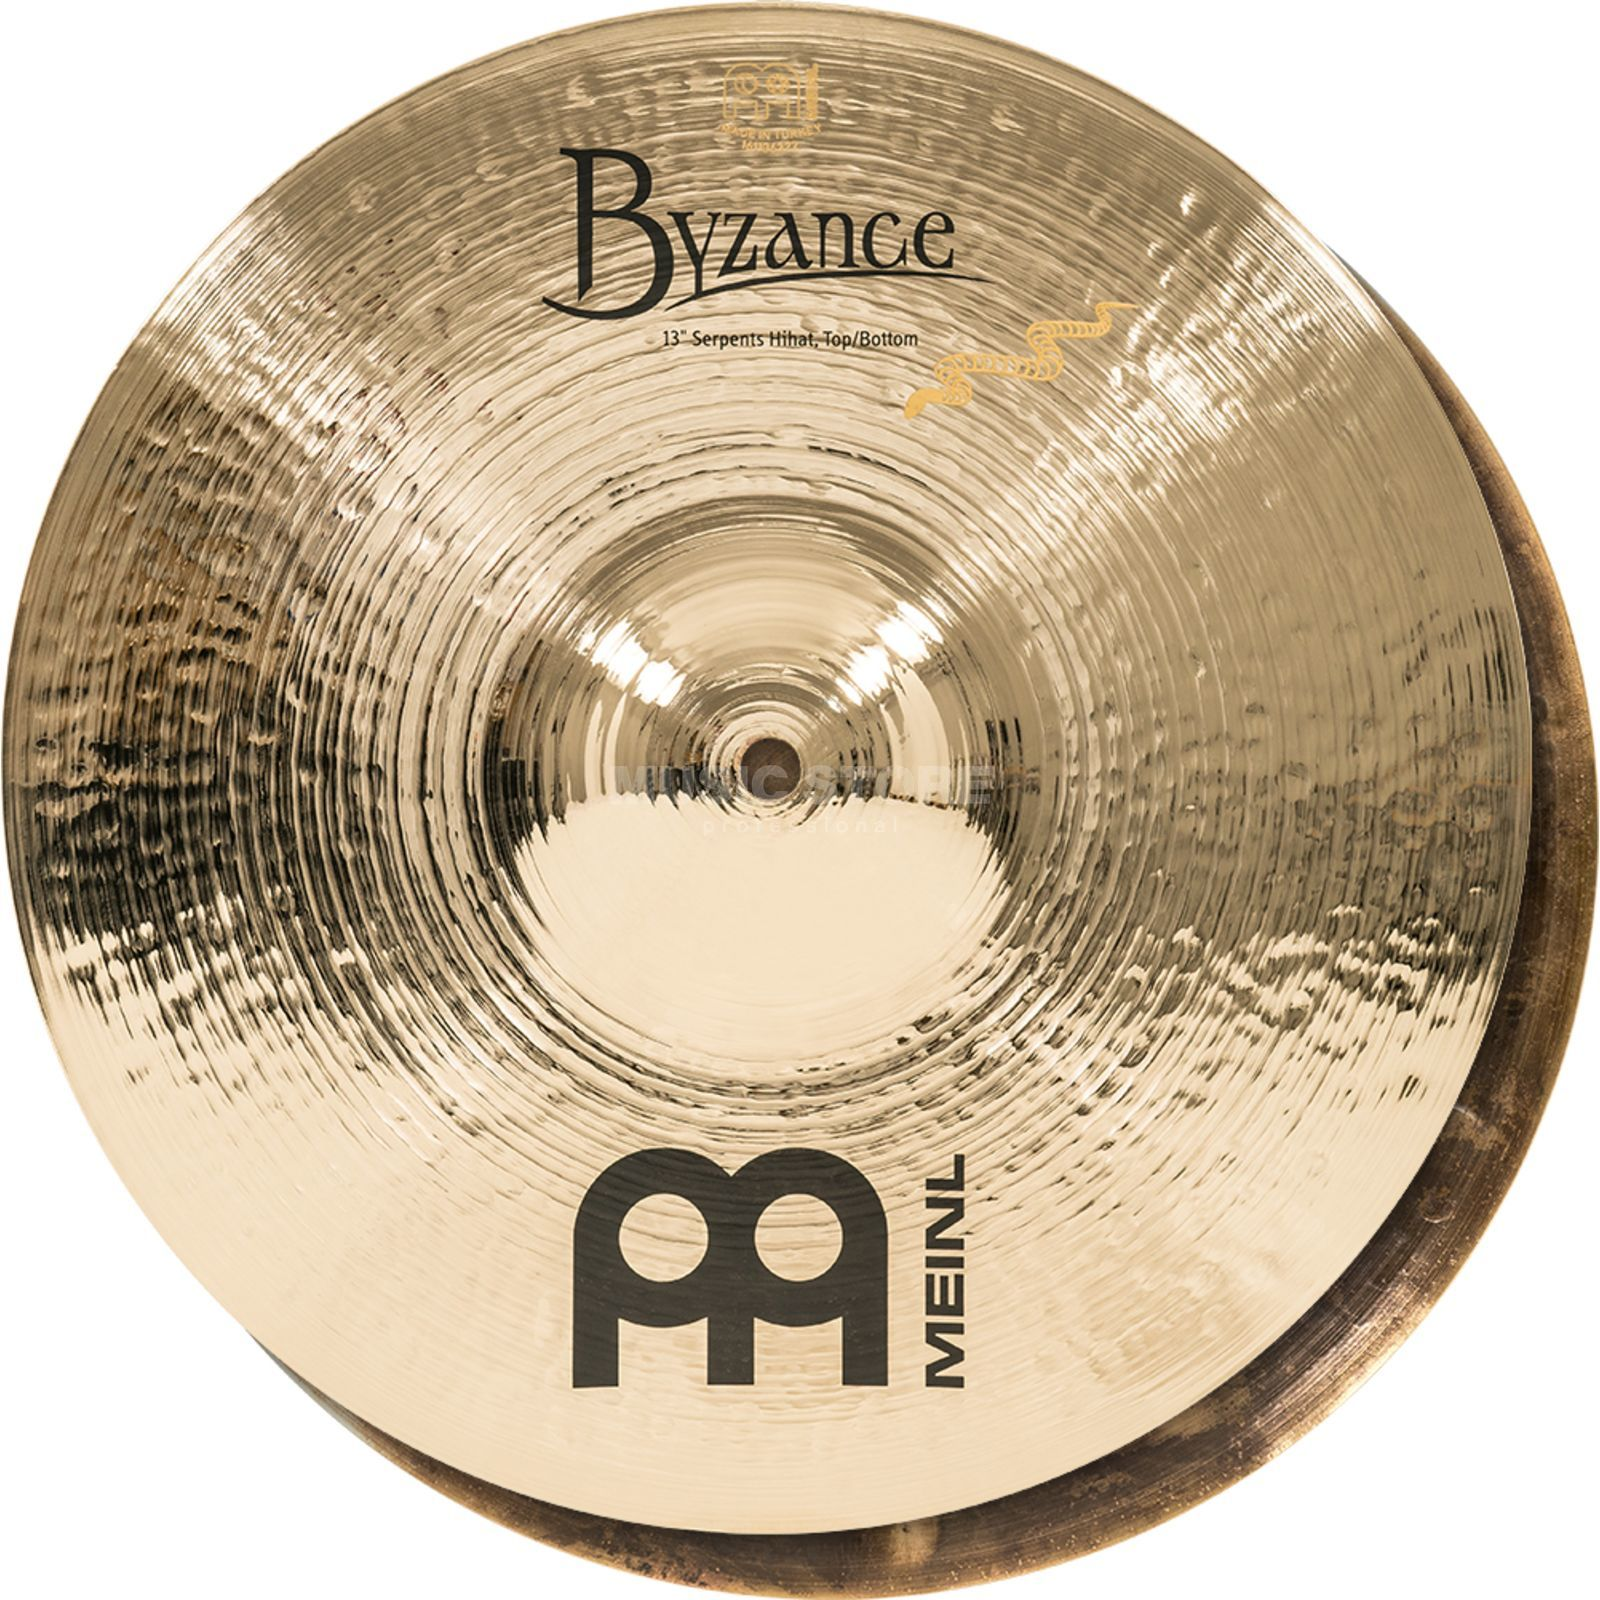 "Meinl Byzance Serpents HiHat 13"", B13SH-B, Brilliant Finish Produktbild"